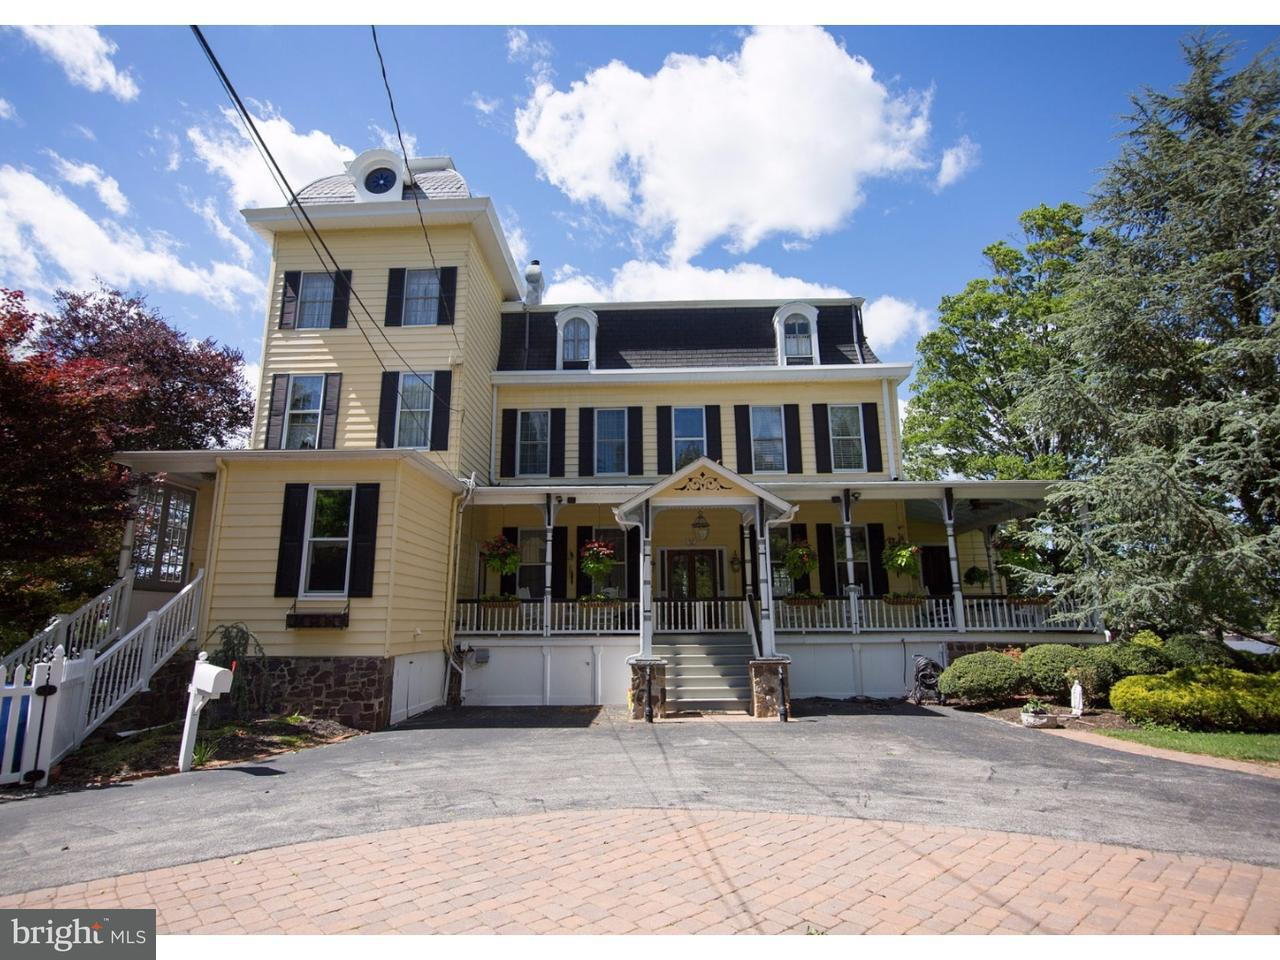 Single Family Home for Sale at 431 COTTAGE Avenue Edgewater Park, New Jersey 08010 United States